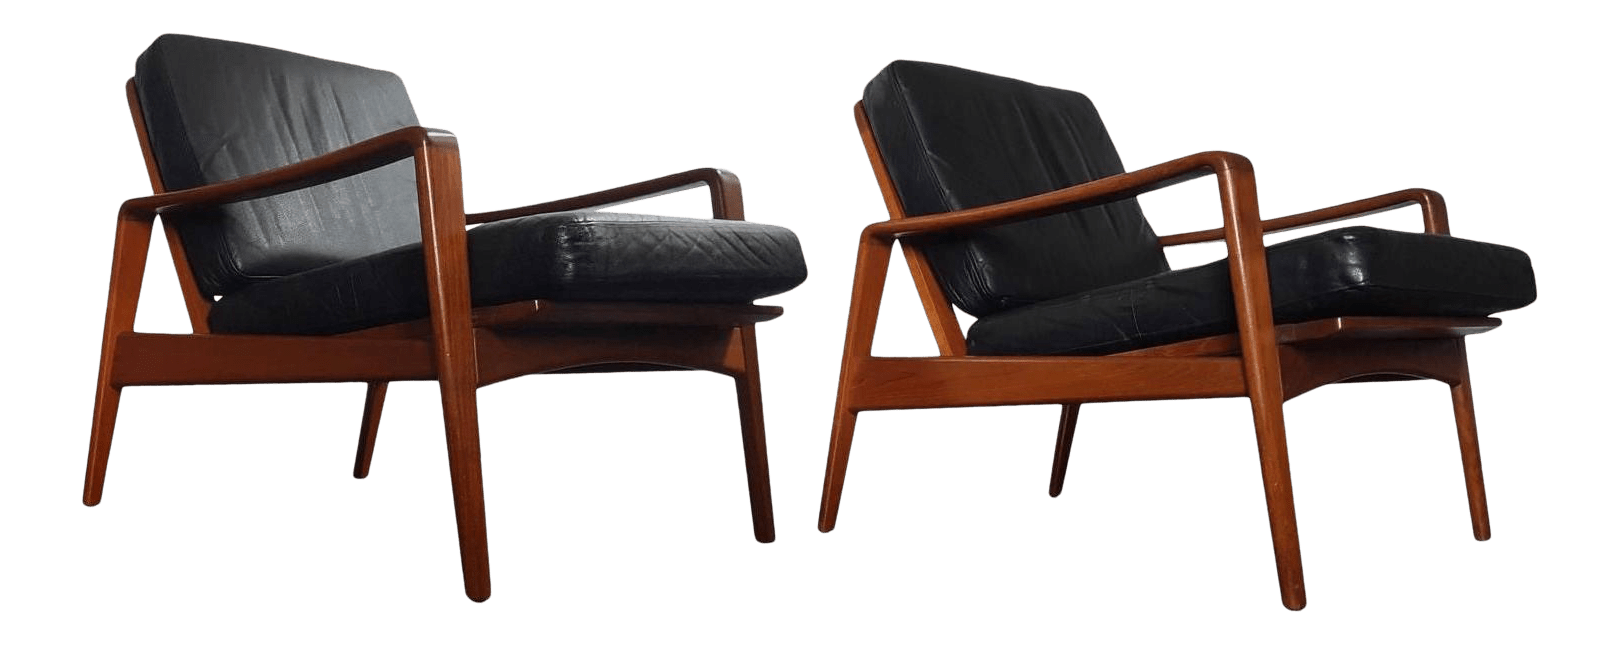 Danish Modern 1960s Teak Lounge Easy Chairs By Arne Wahl Iversen A Pair Chairish